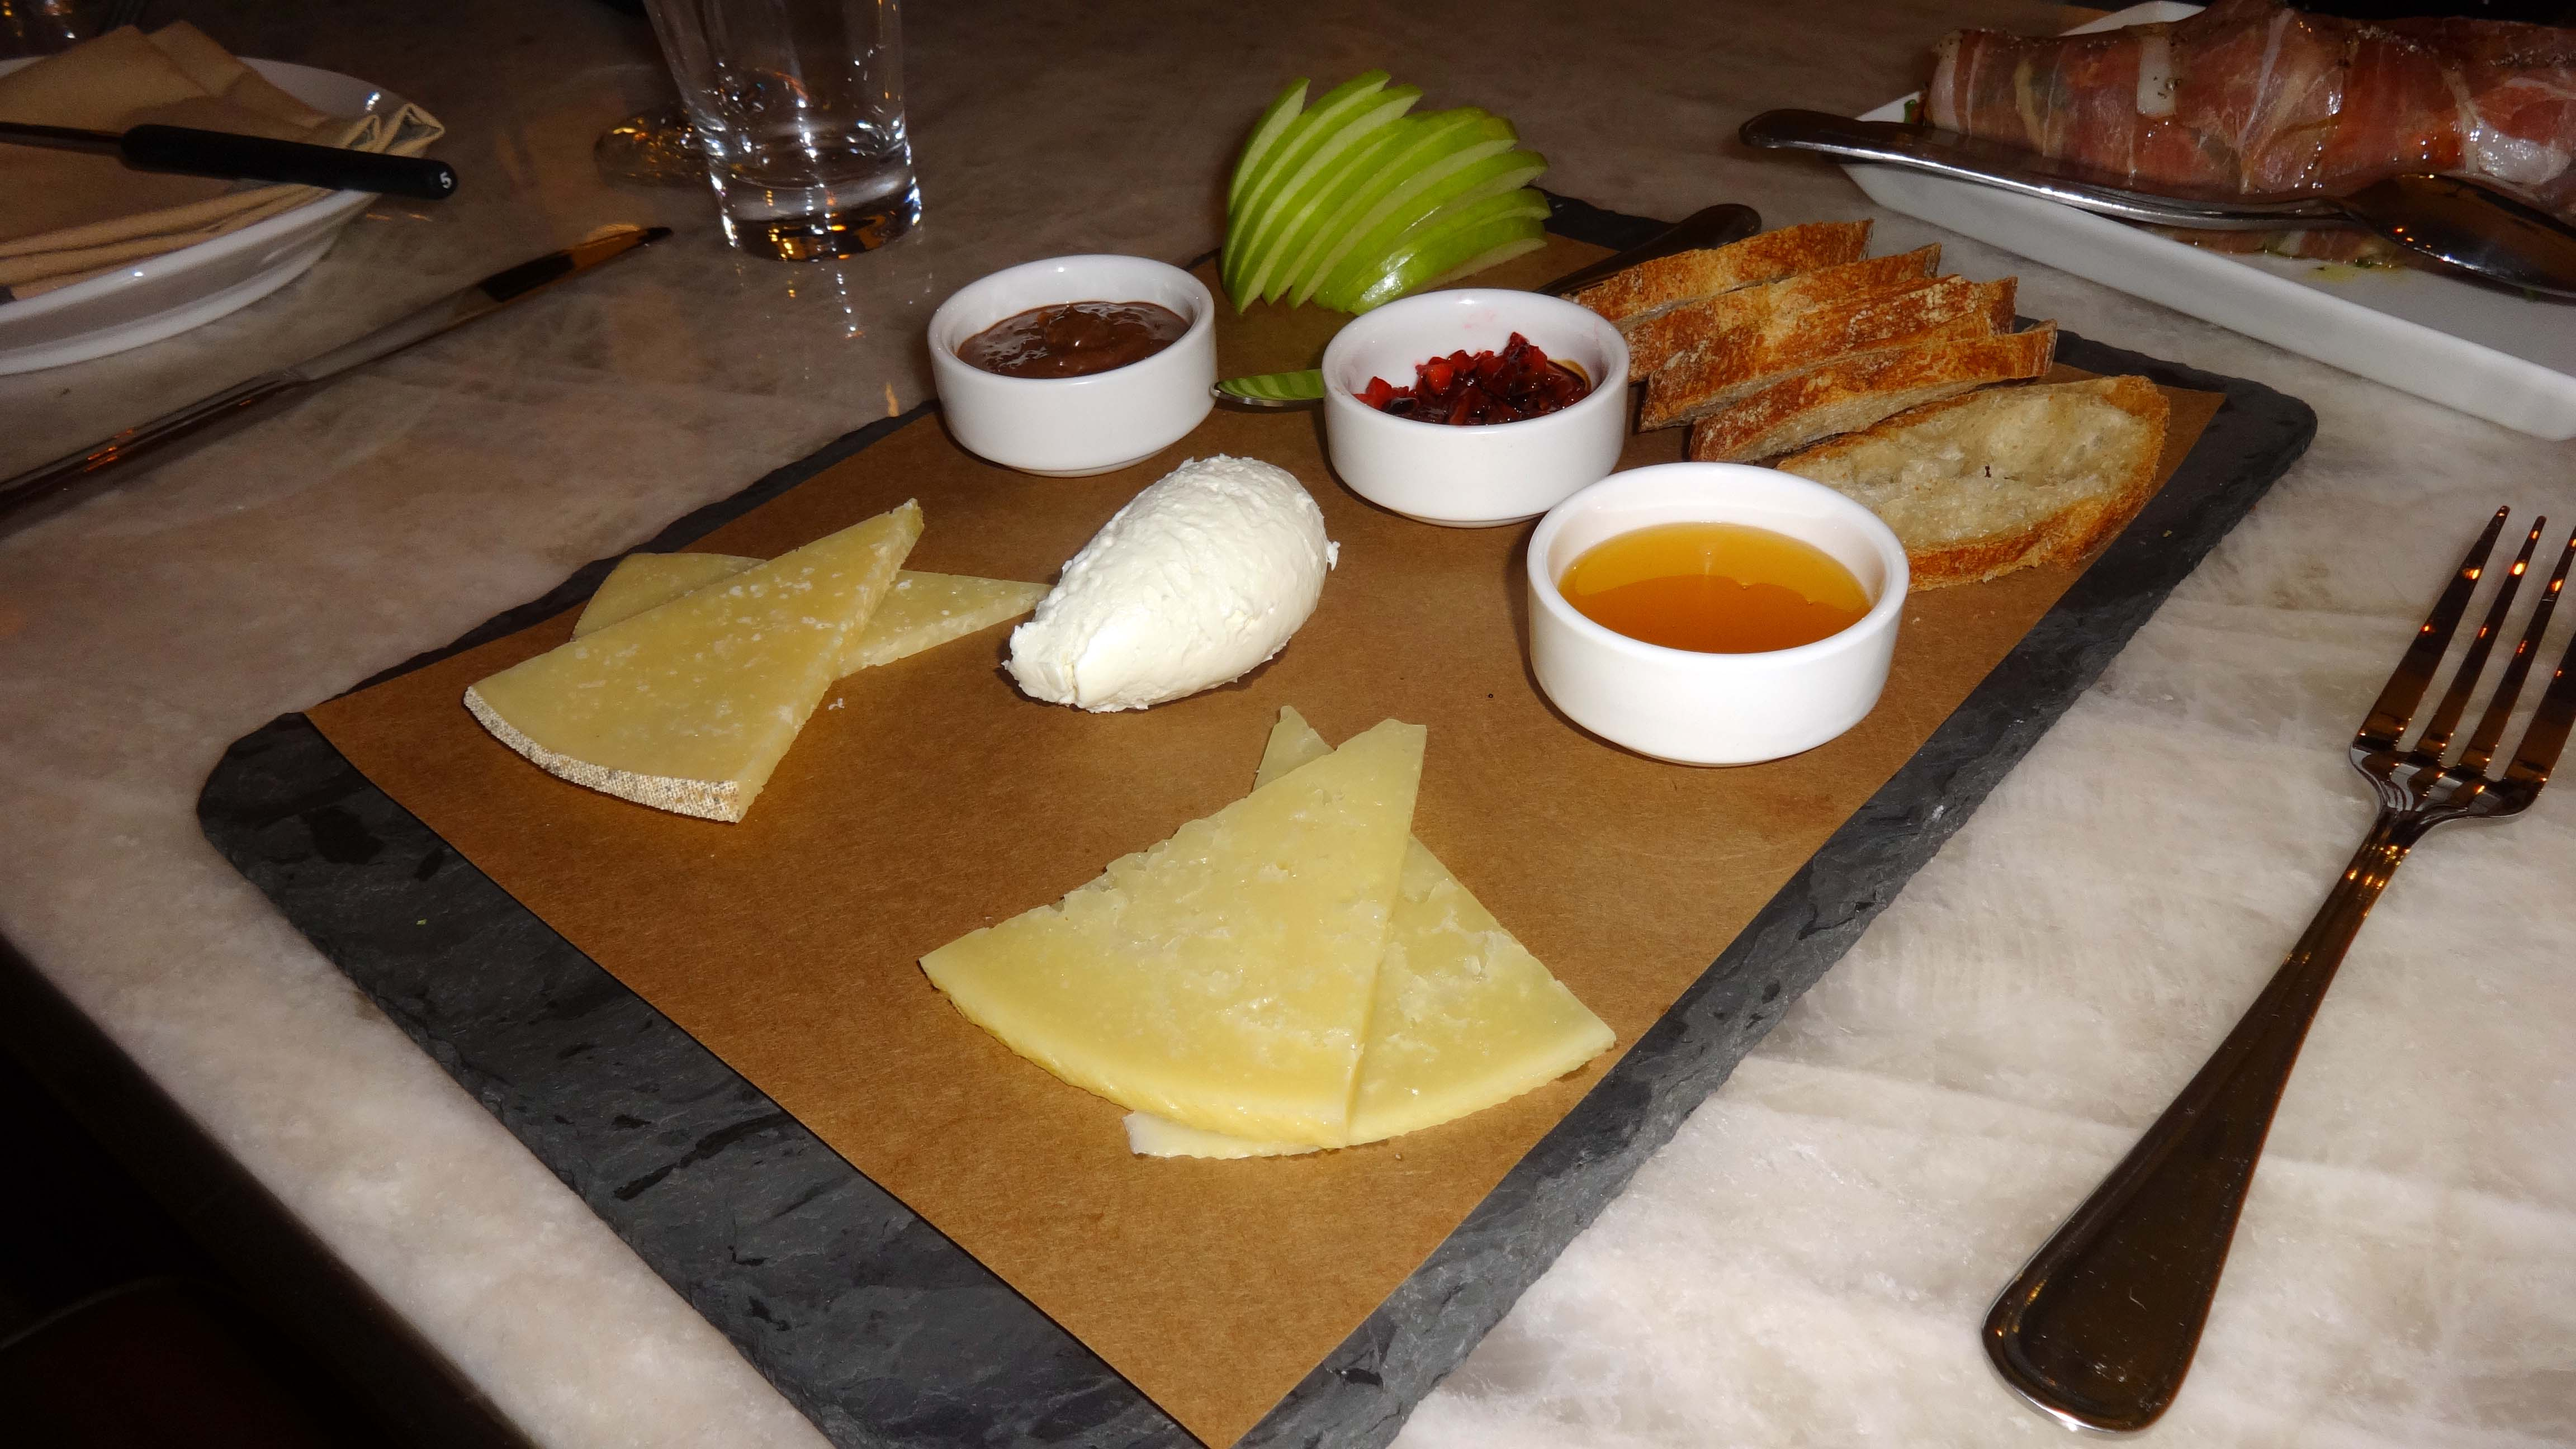 Amada cheese plate